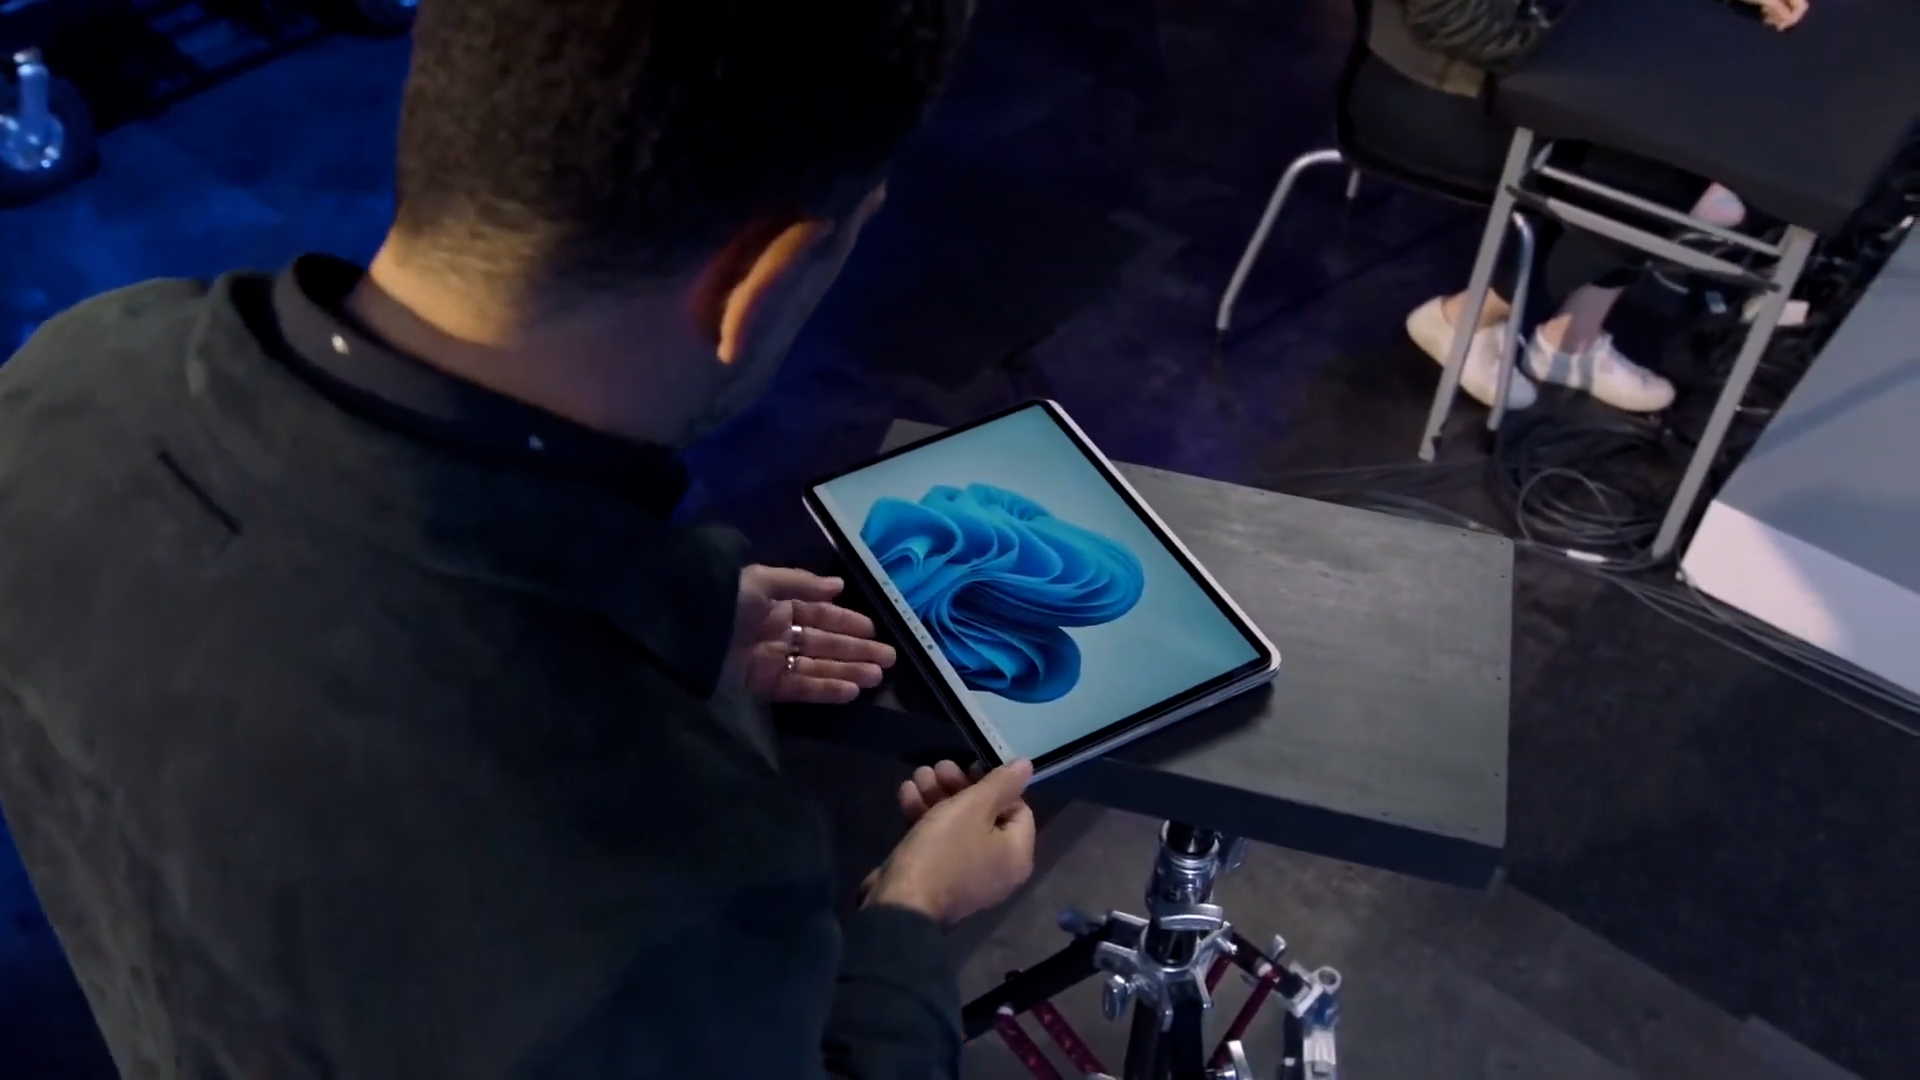 Video: Microsoft announces new Surface devices and accessories in online event